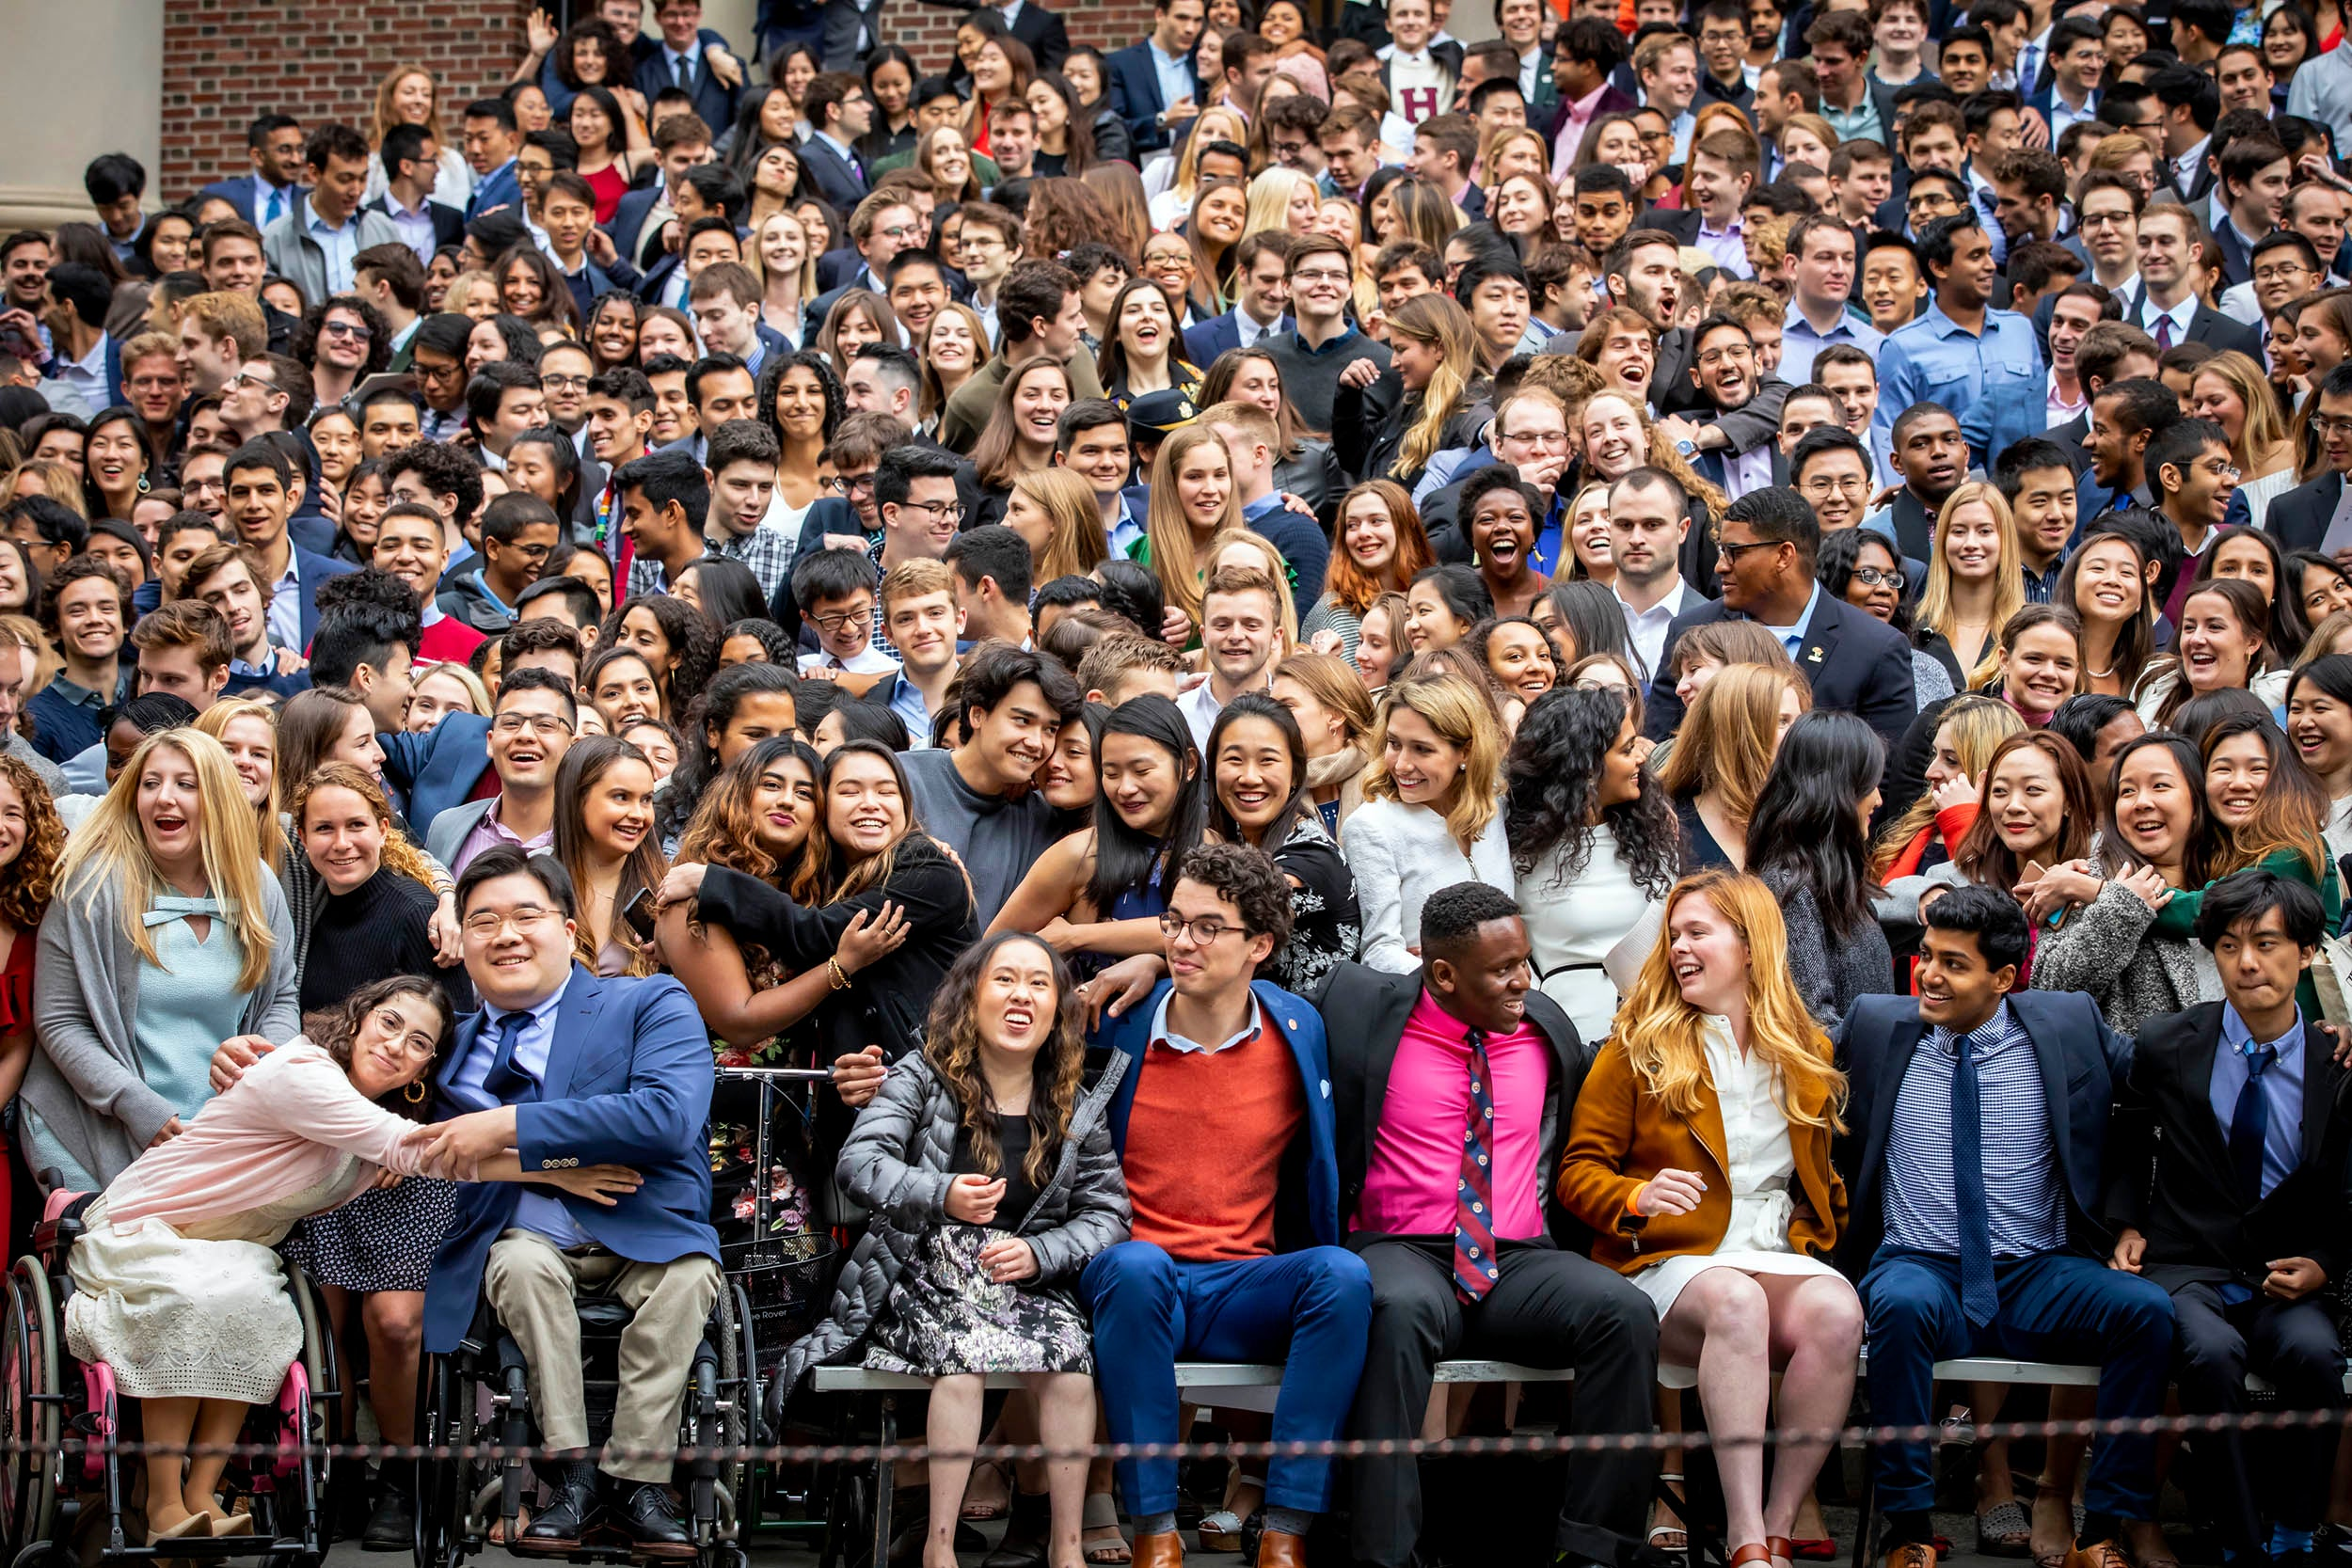 Seniors smile and hug on the steps of Widener Library.